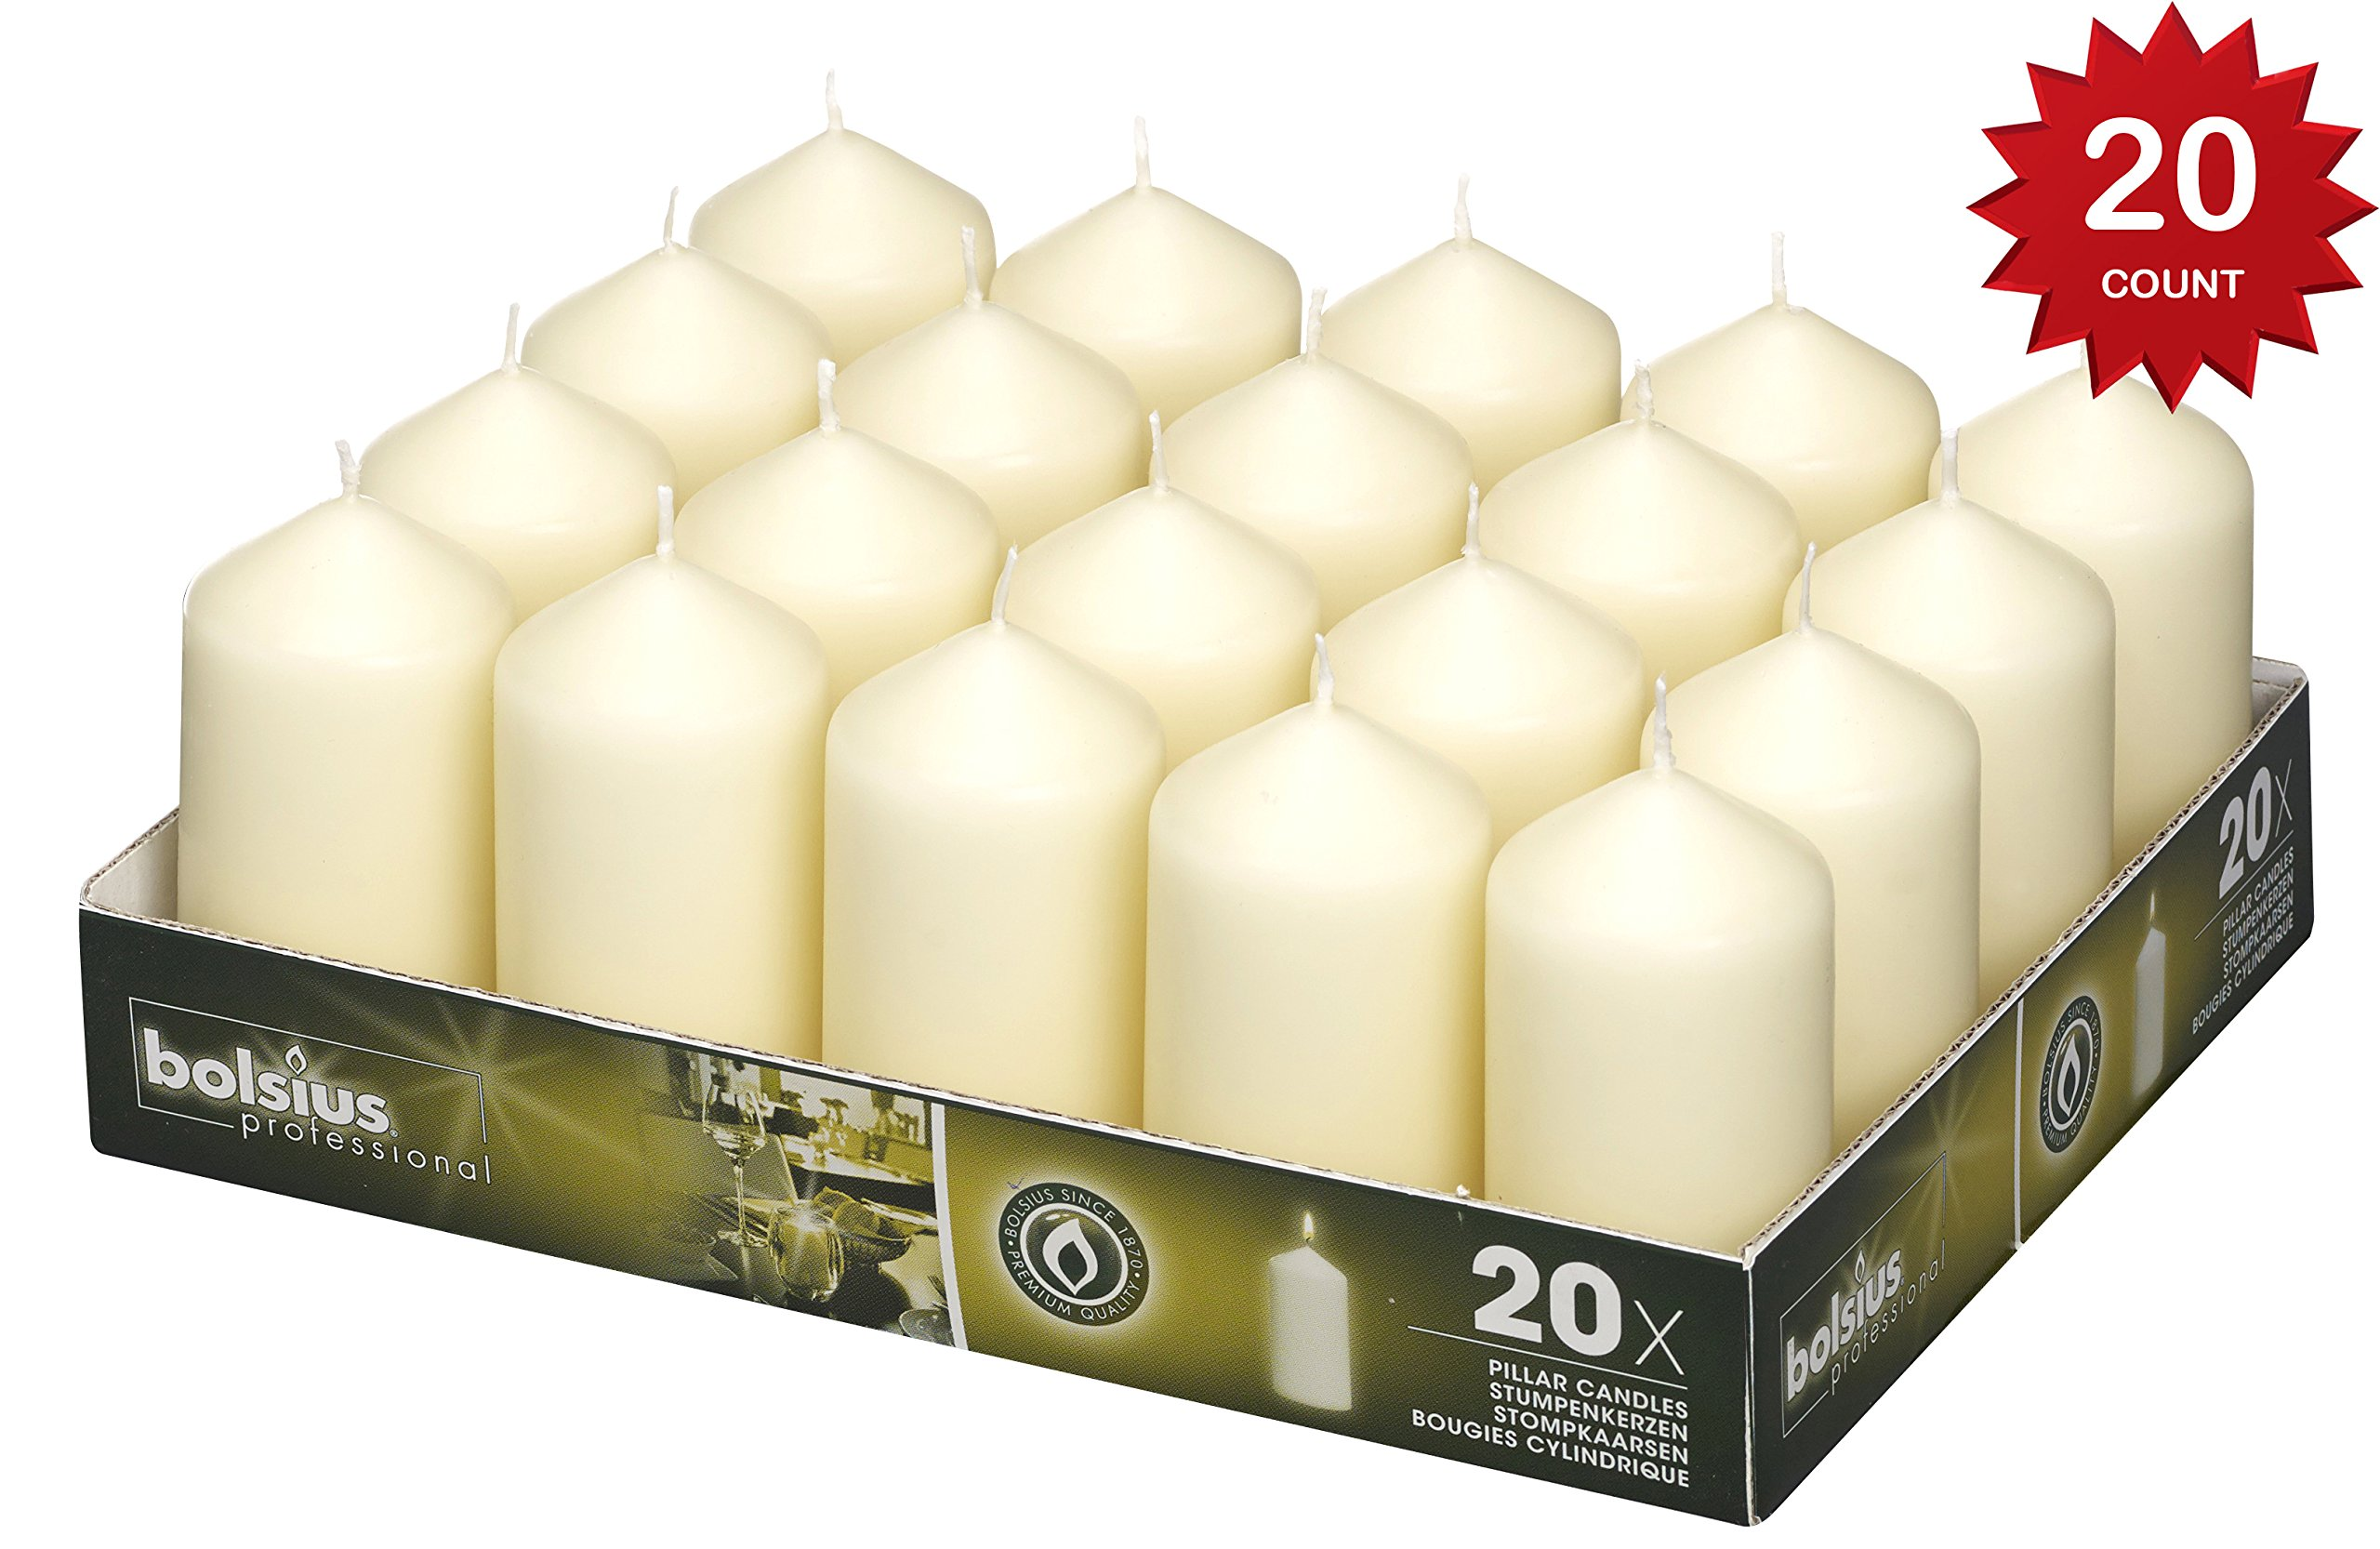 Bolsius Tray Of 20 Ivory Pillar Candles Aprox. 2X4 Inches